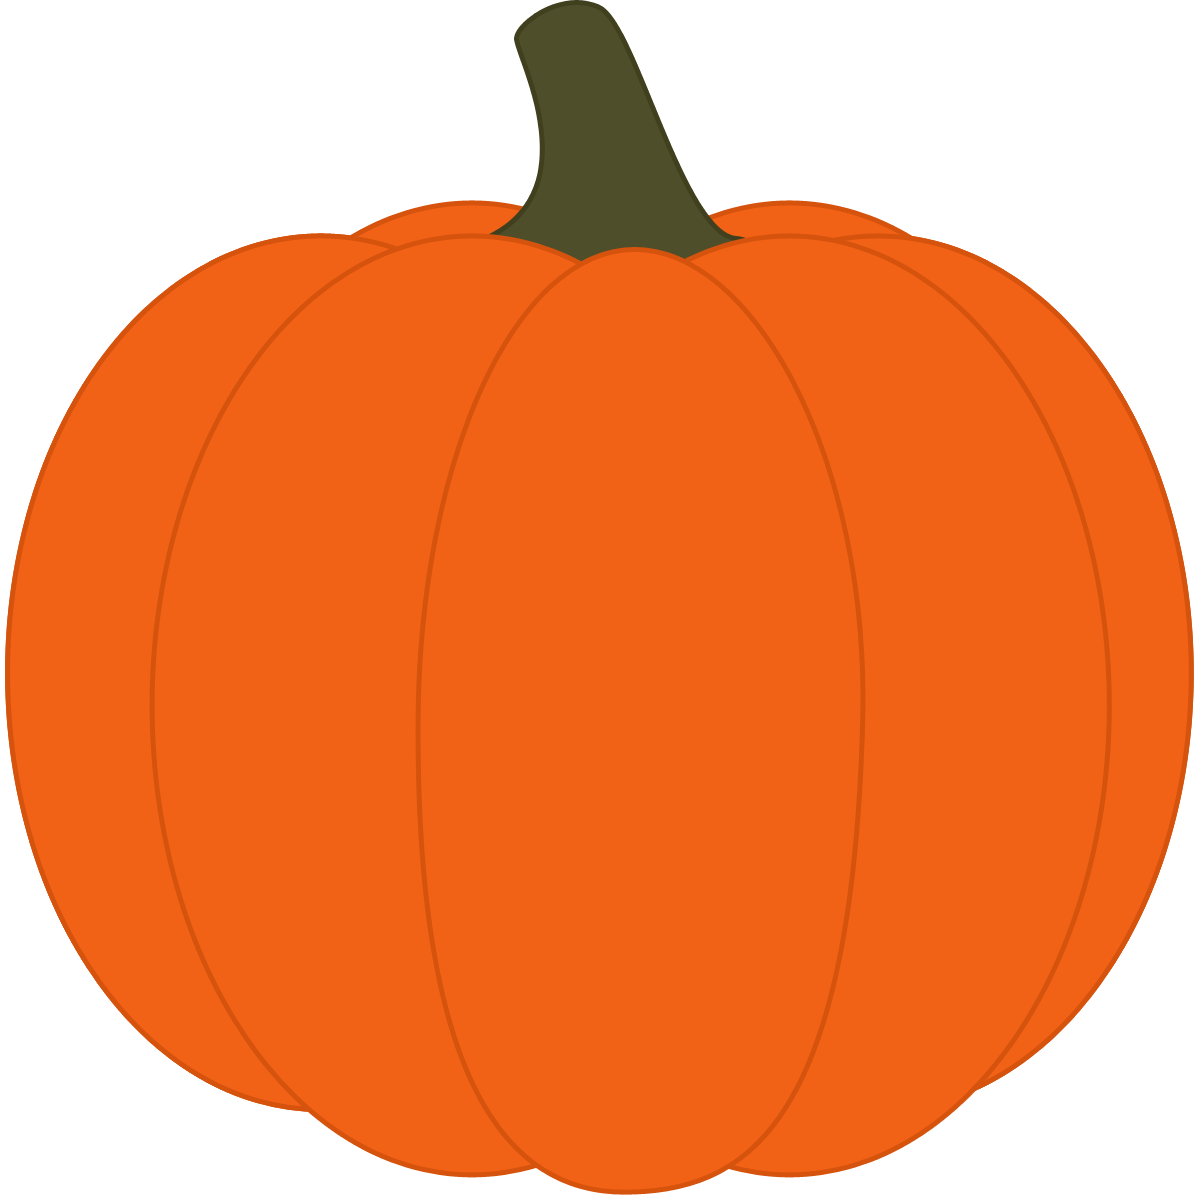 Pumpkin Clip Art For Kids